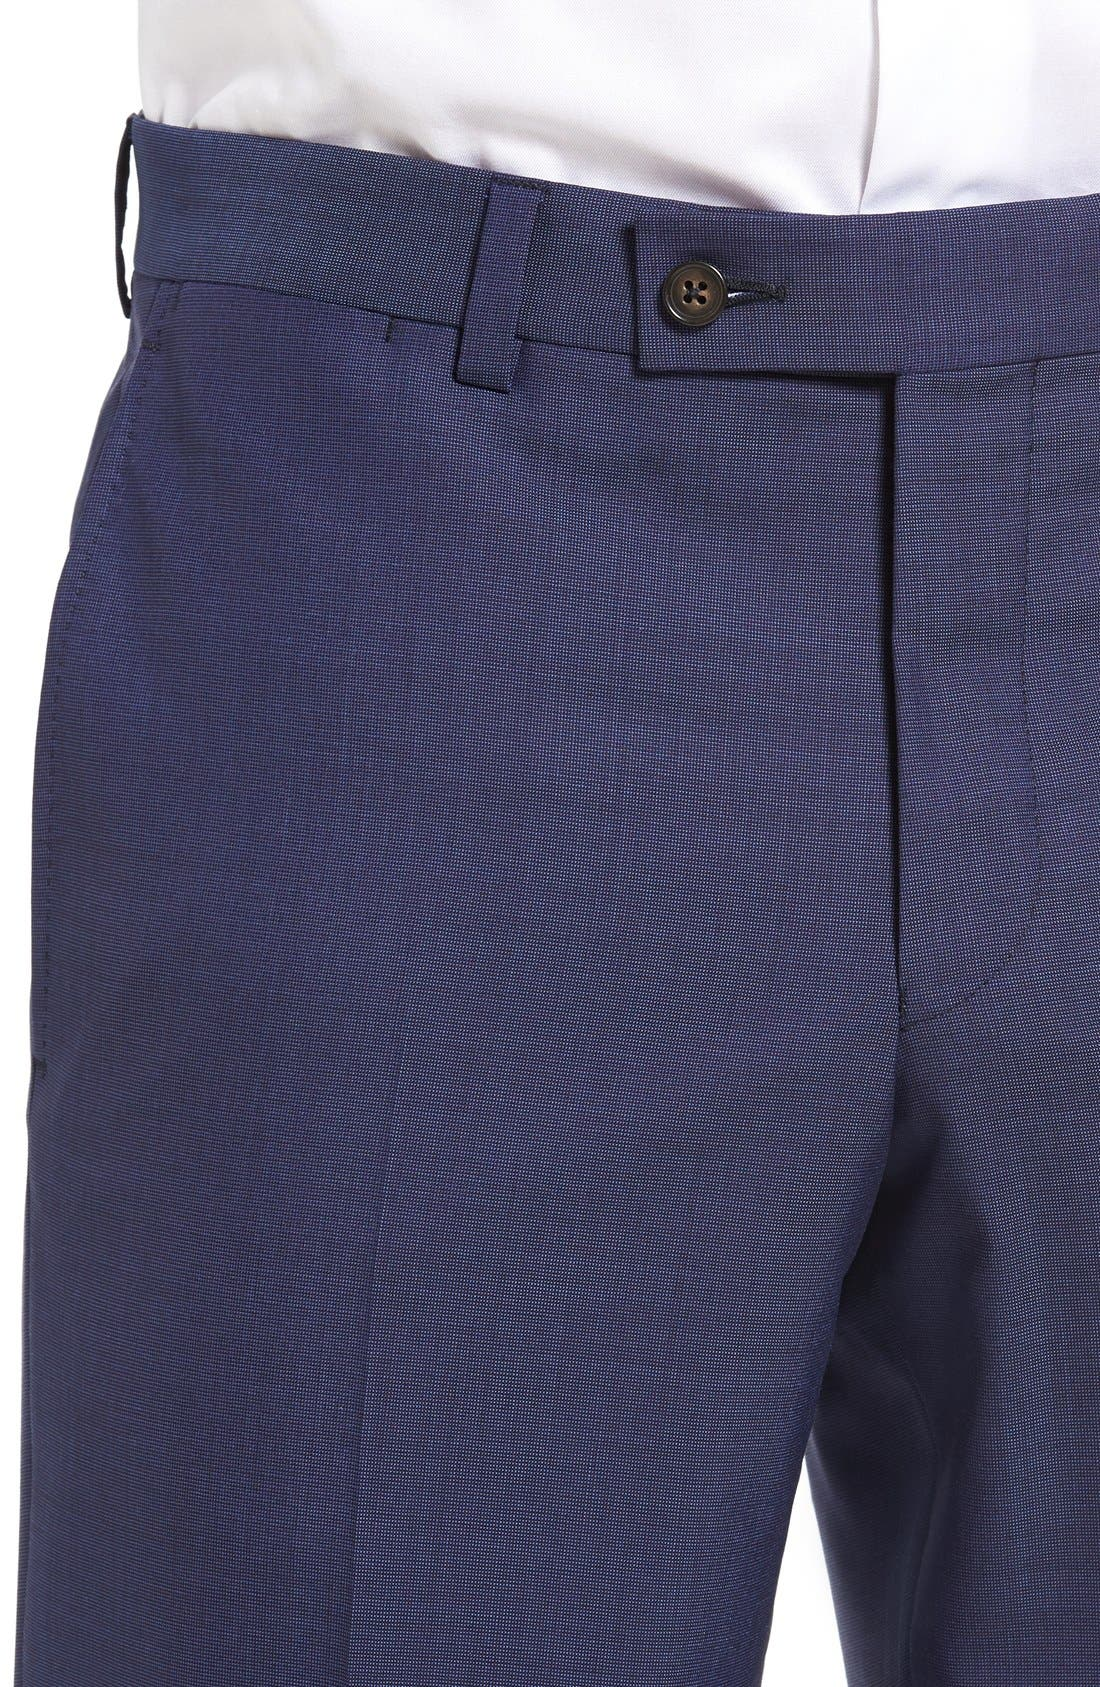 Jefferson Flat Front Solid Wool Trousers,                             Alternate thumbnail 10, color,                             BLUE